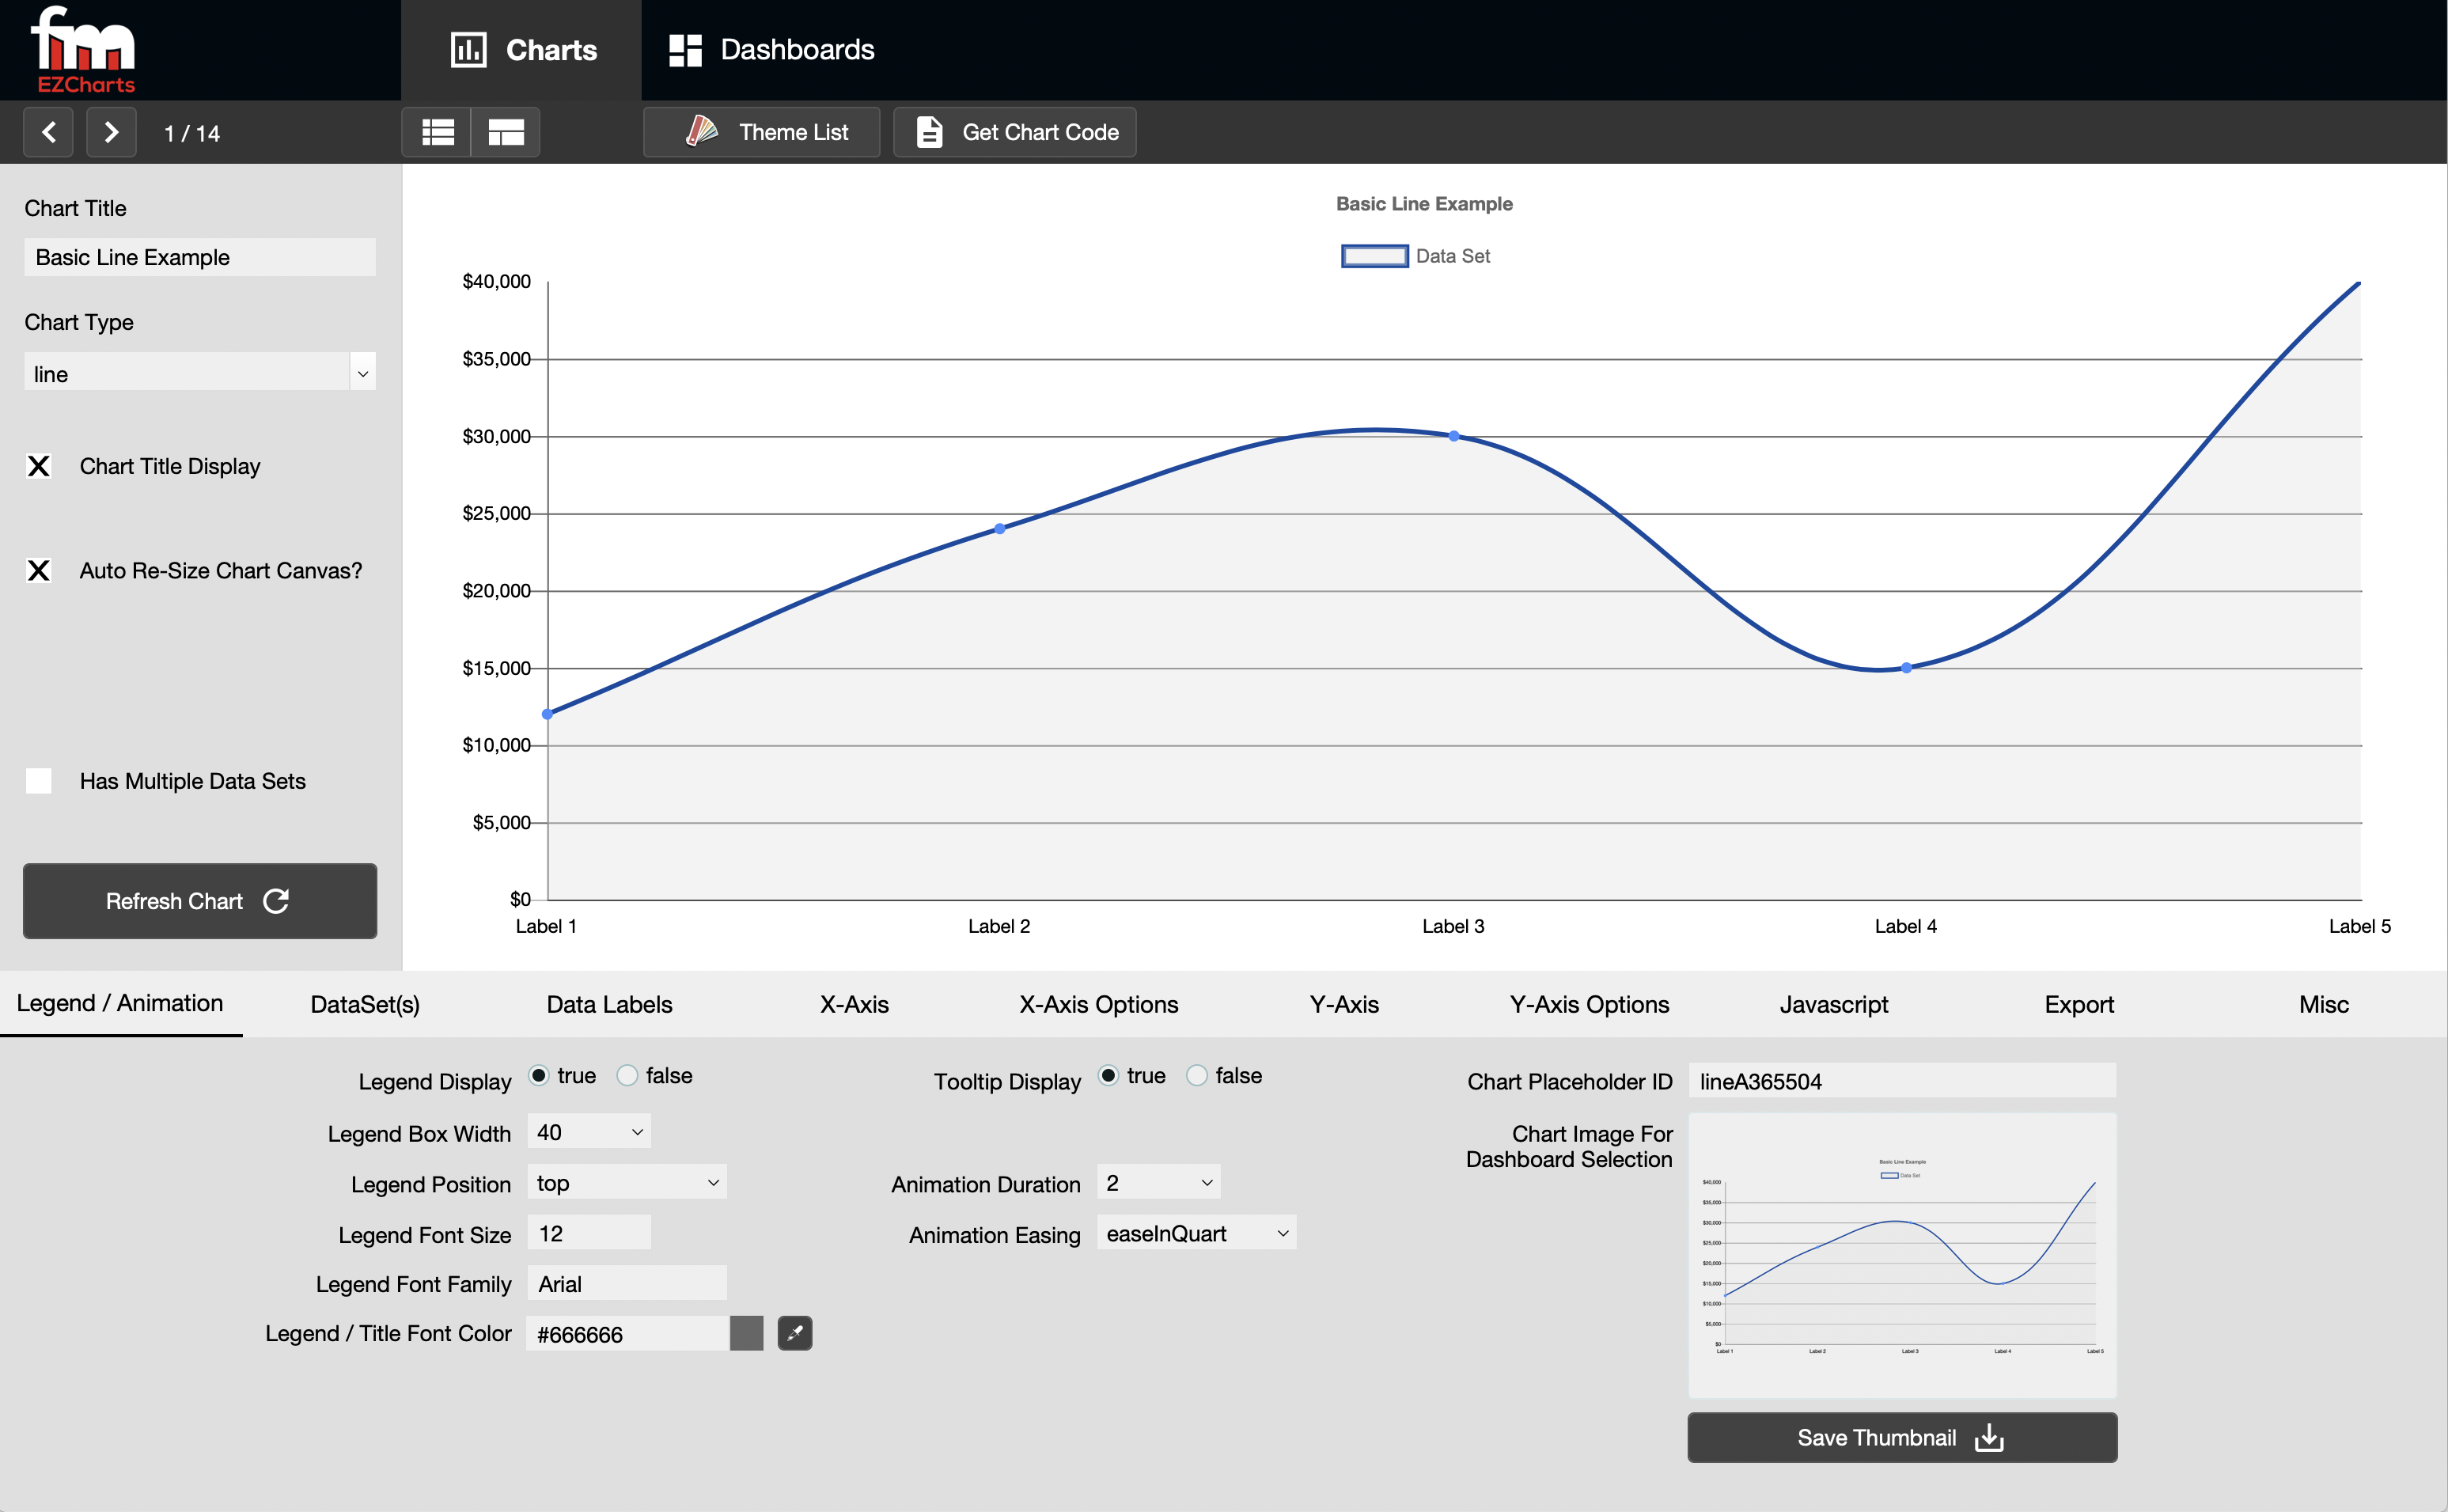 Proof Announces Launch of fmEZcharts, A Chart & Dashboard Creation Tool Image